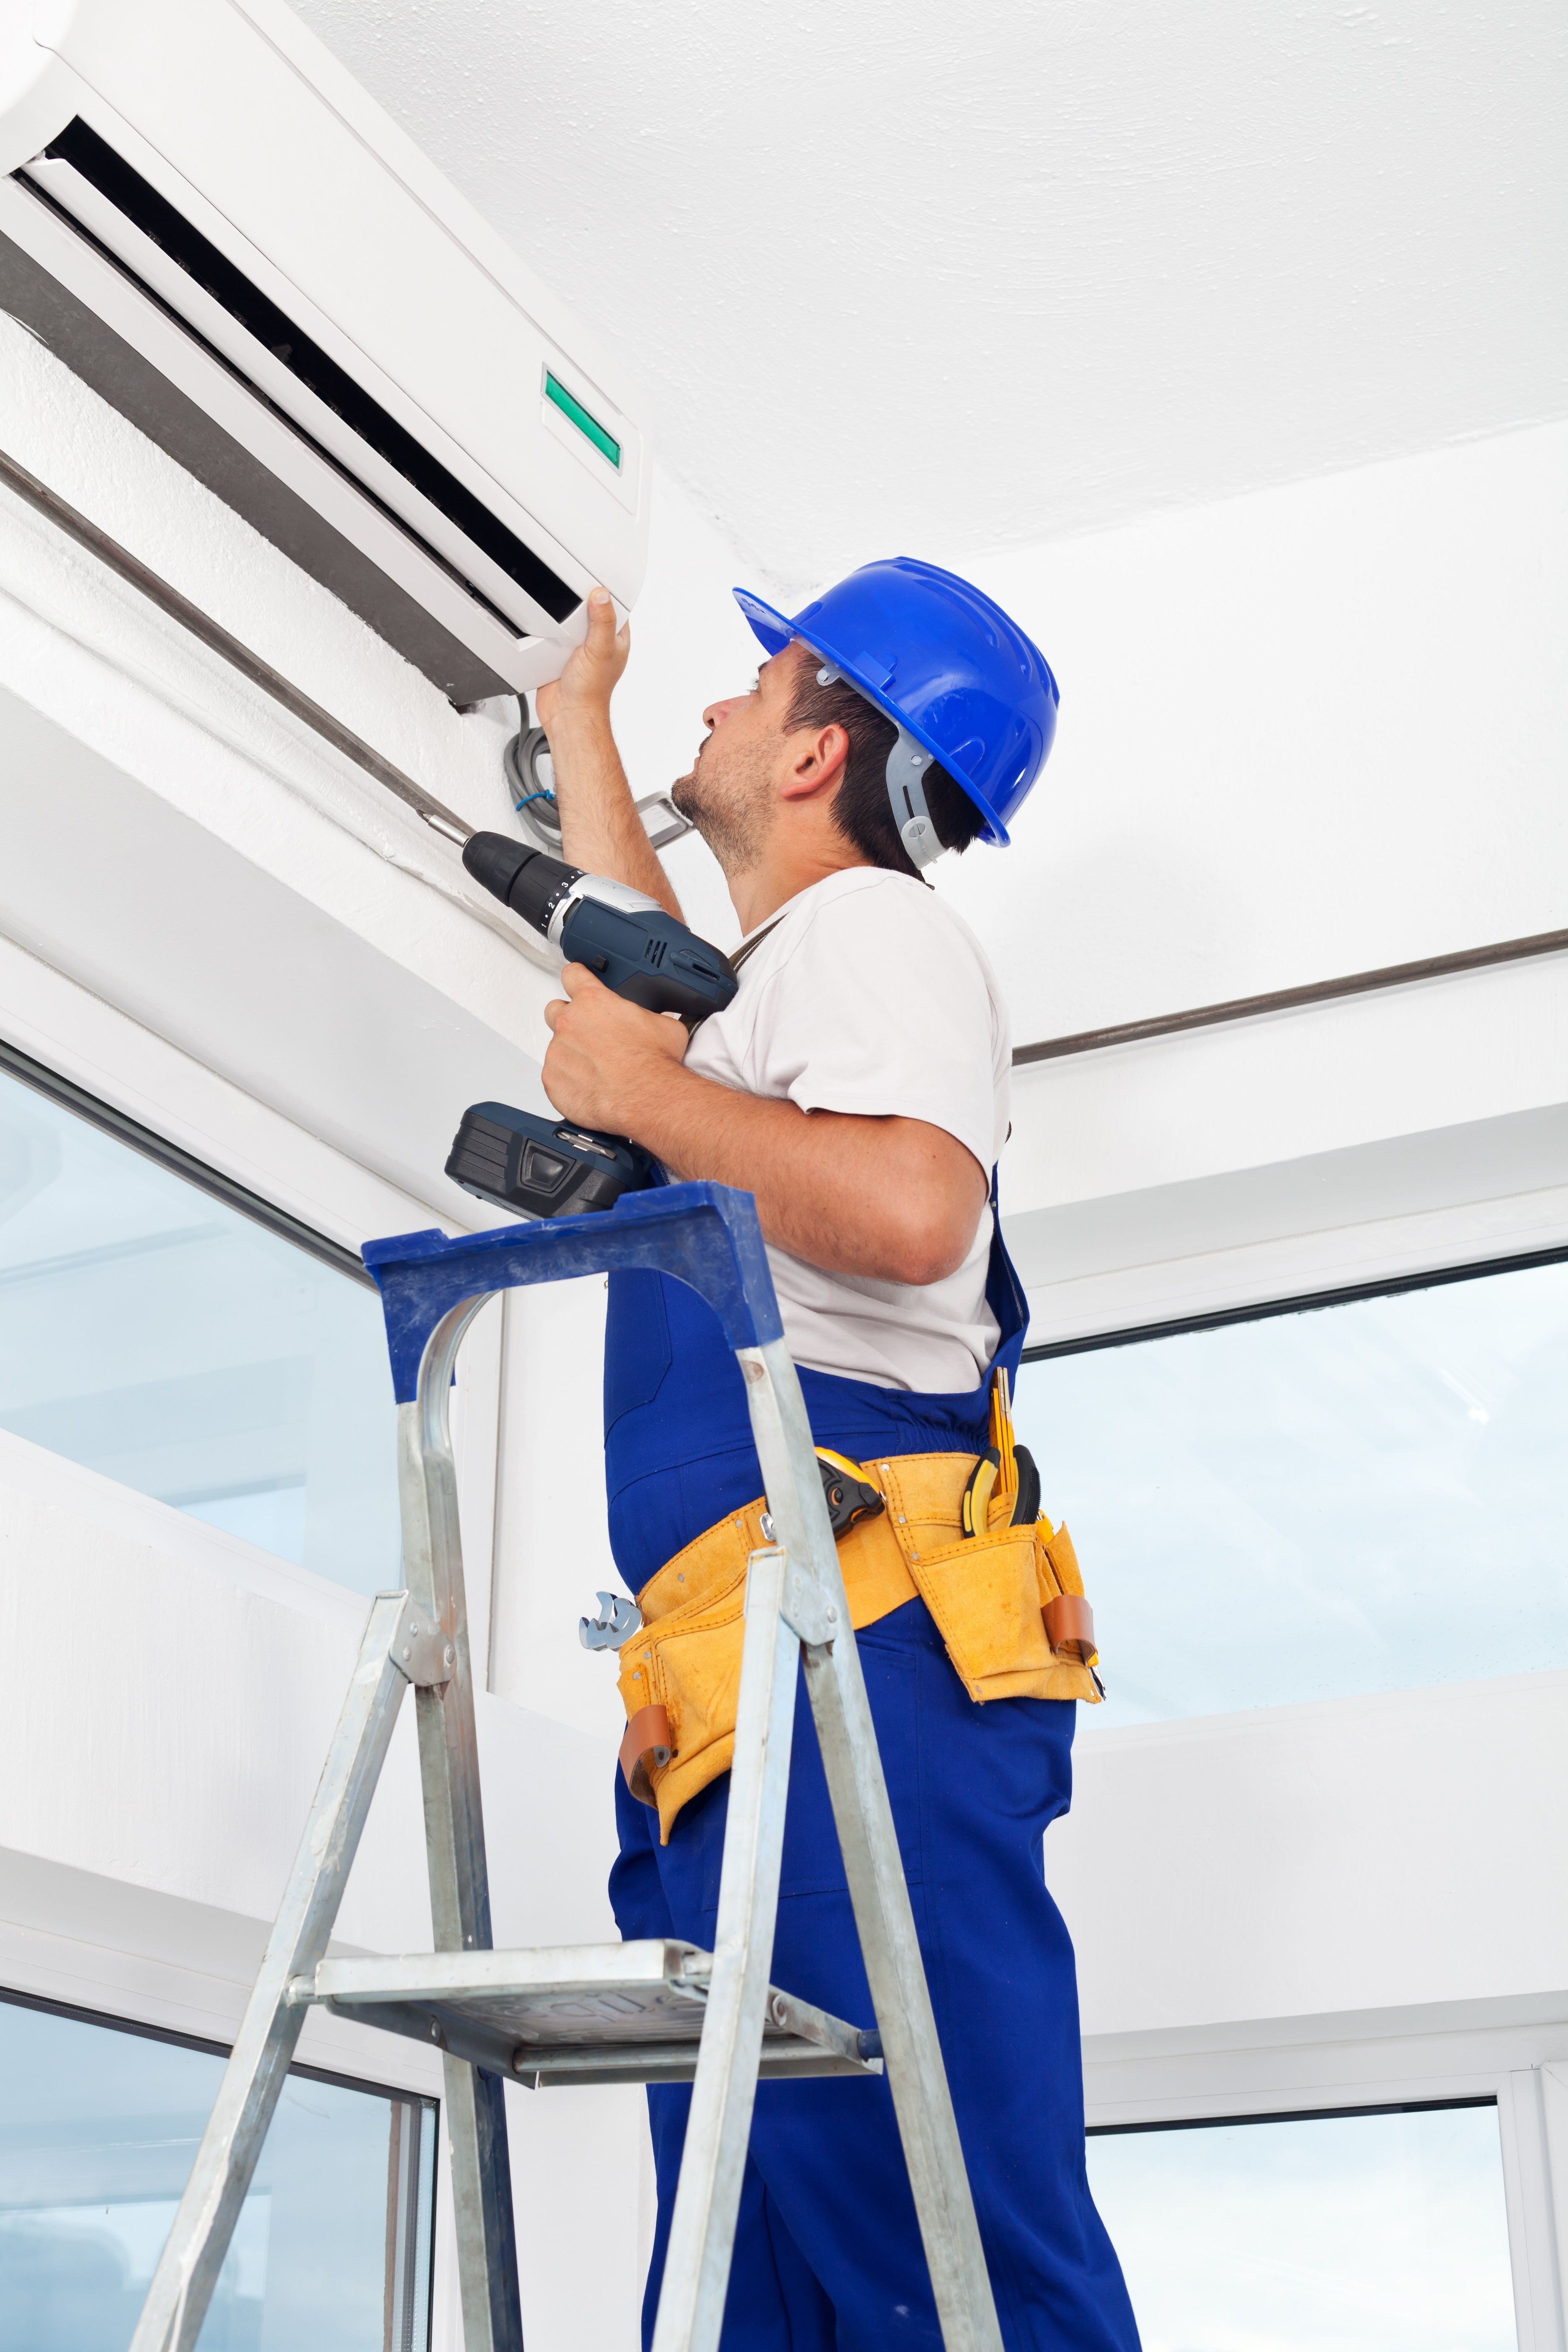 Simple Air Conditioner Maintenance Tips To Save Energy And Budget